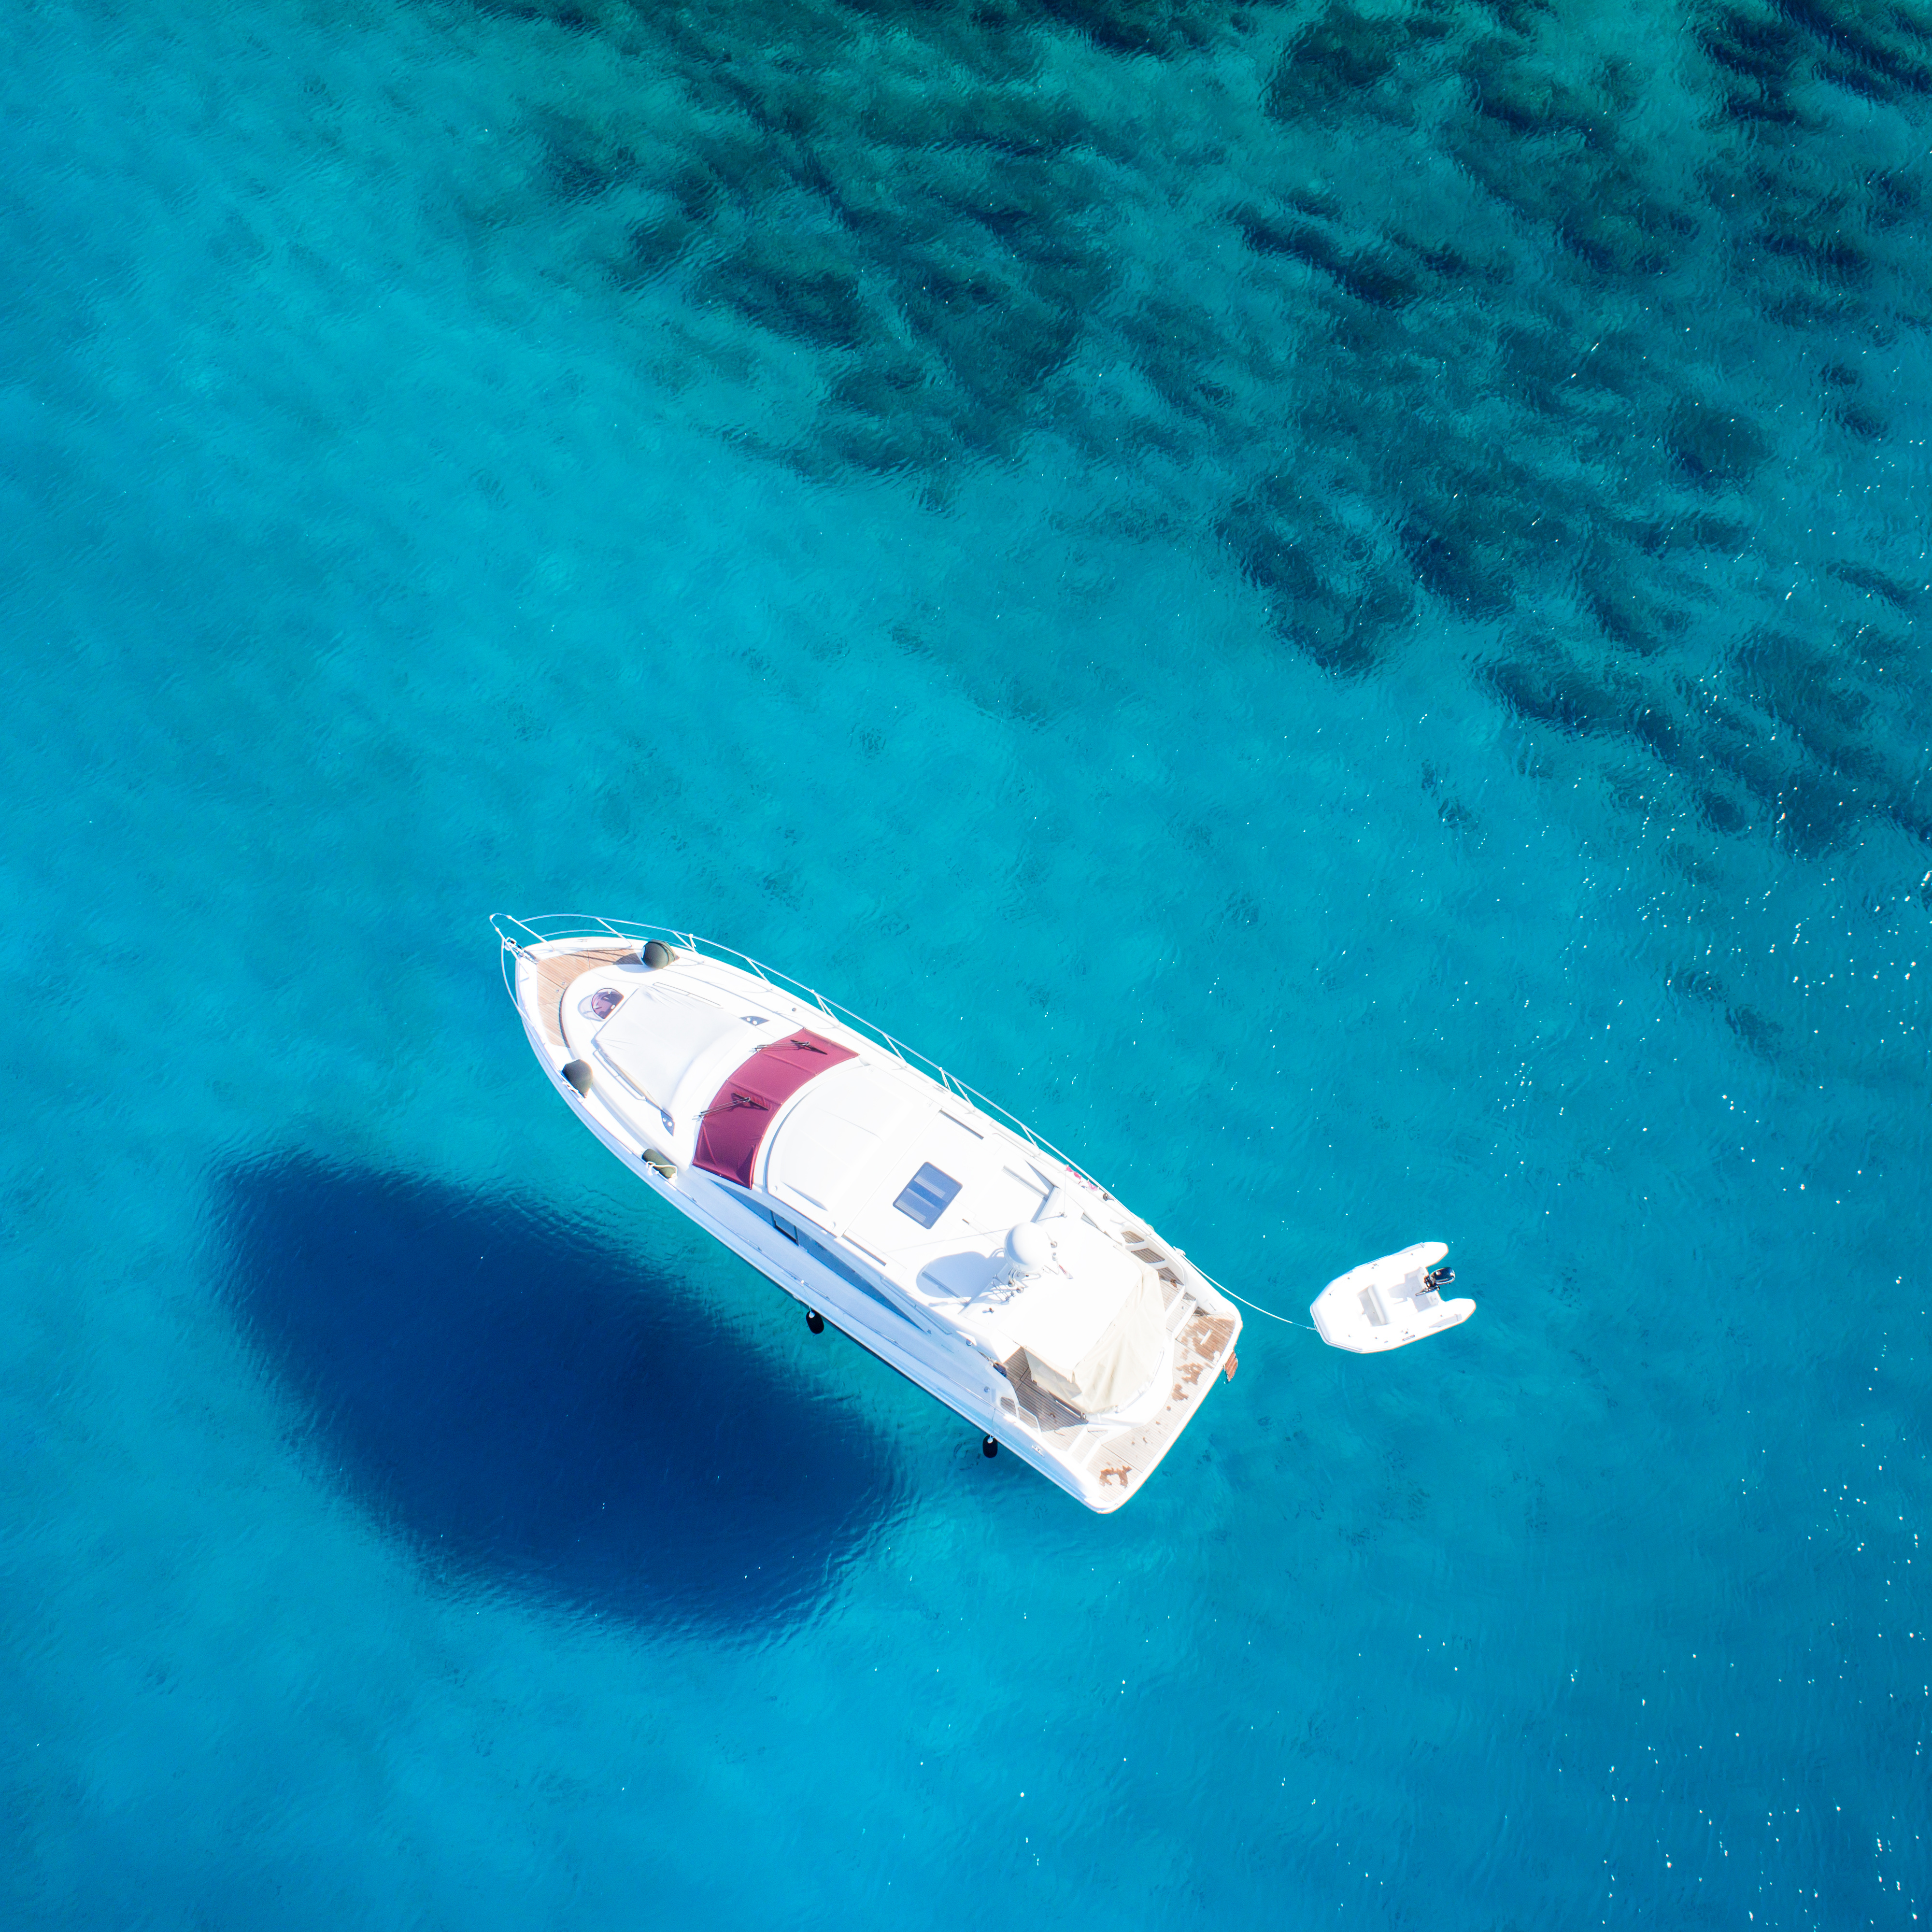 Dinghy 5020 on clear sea water 54306